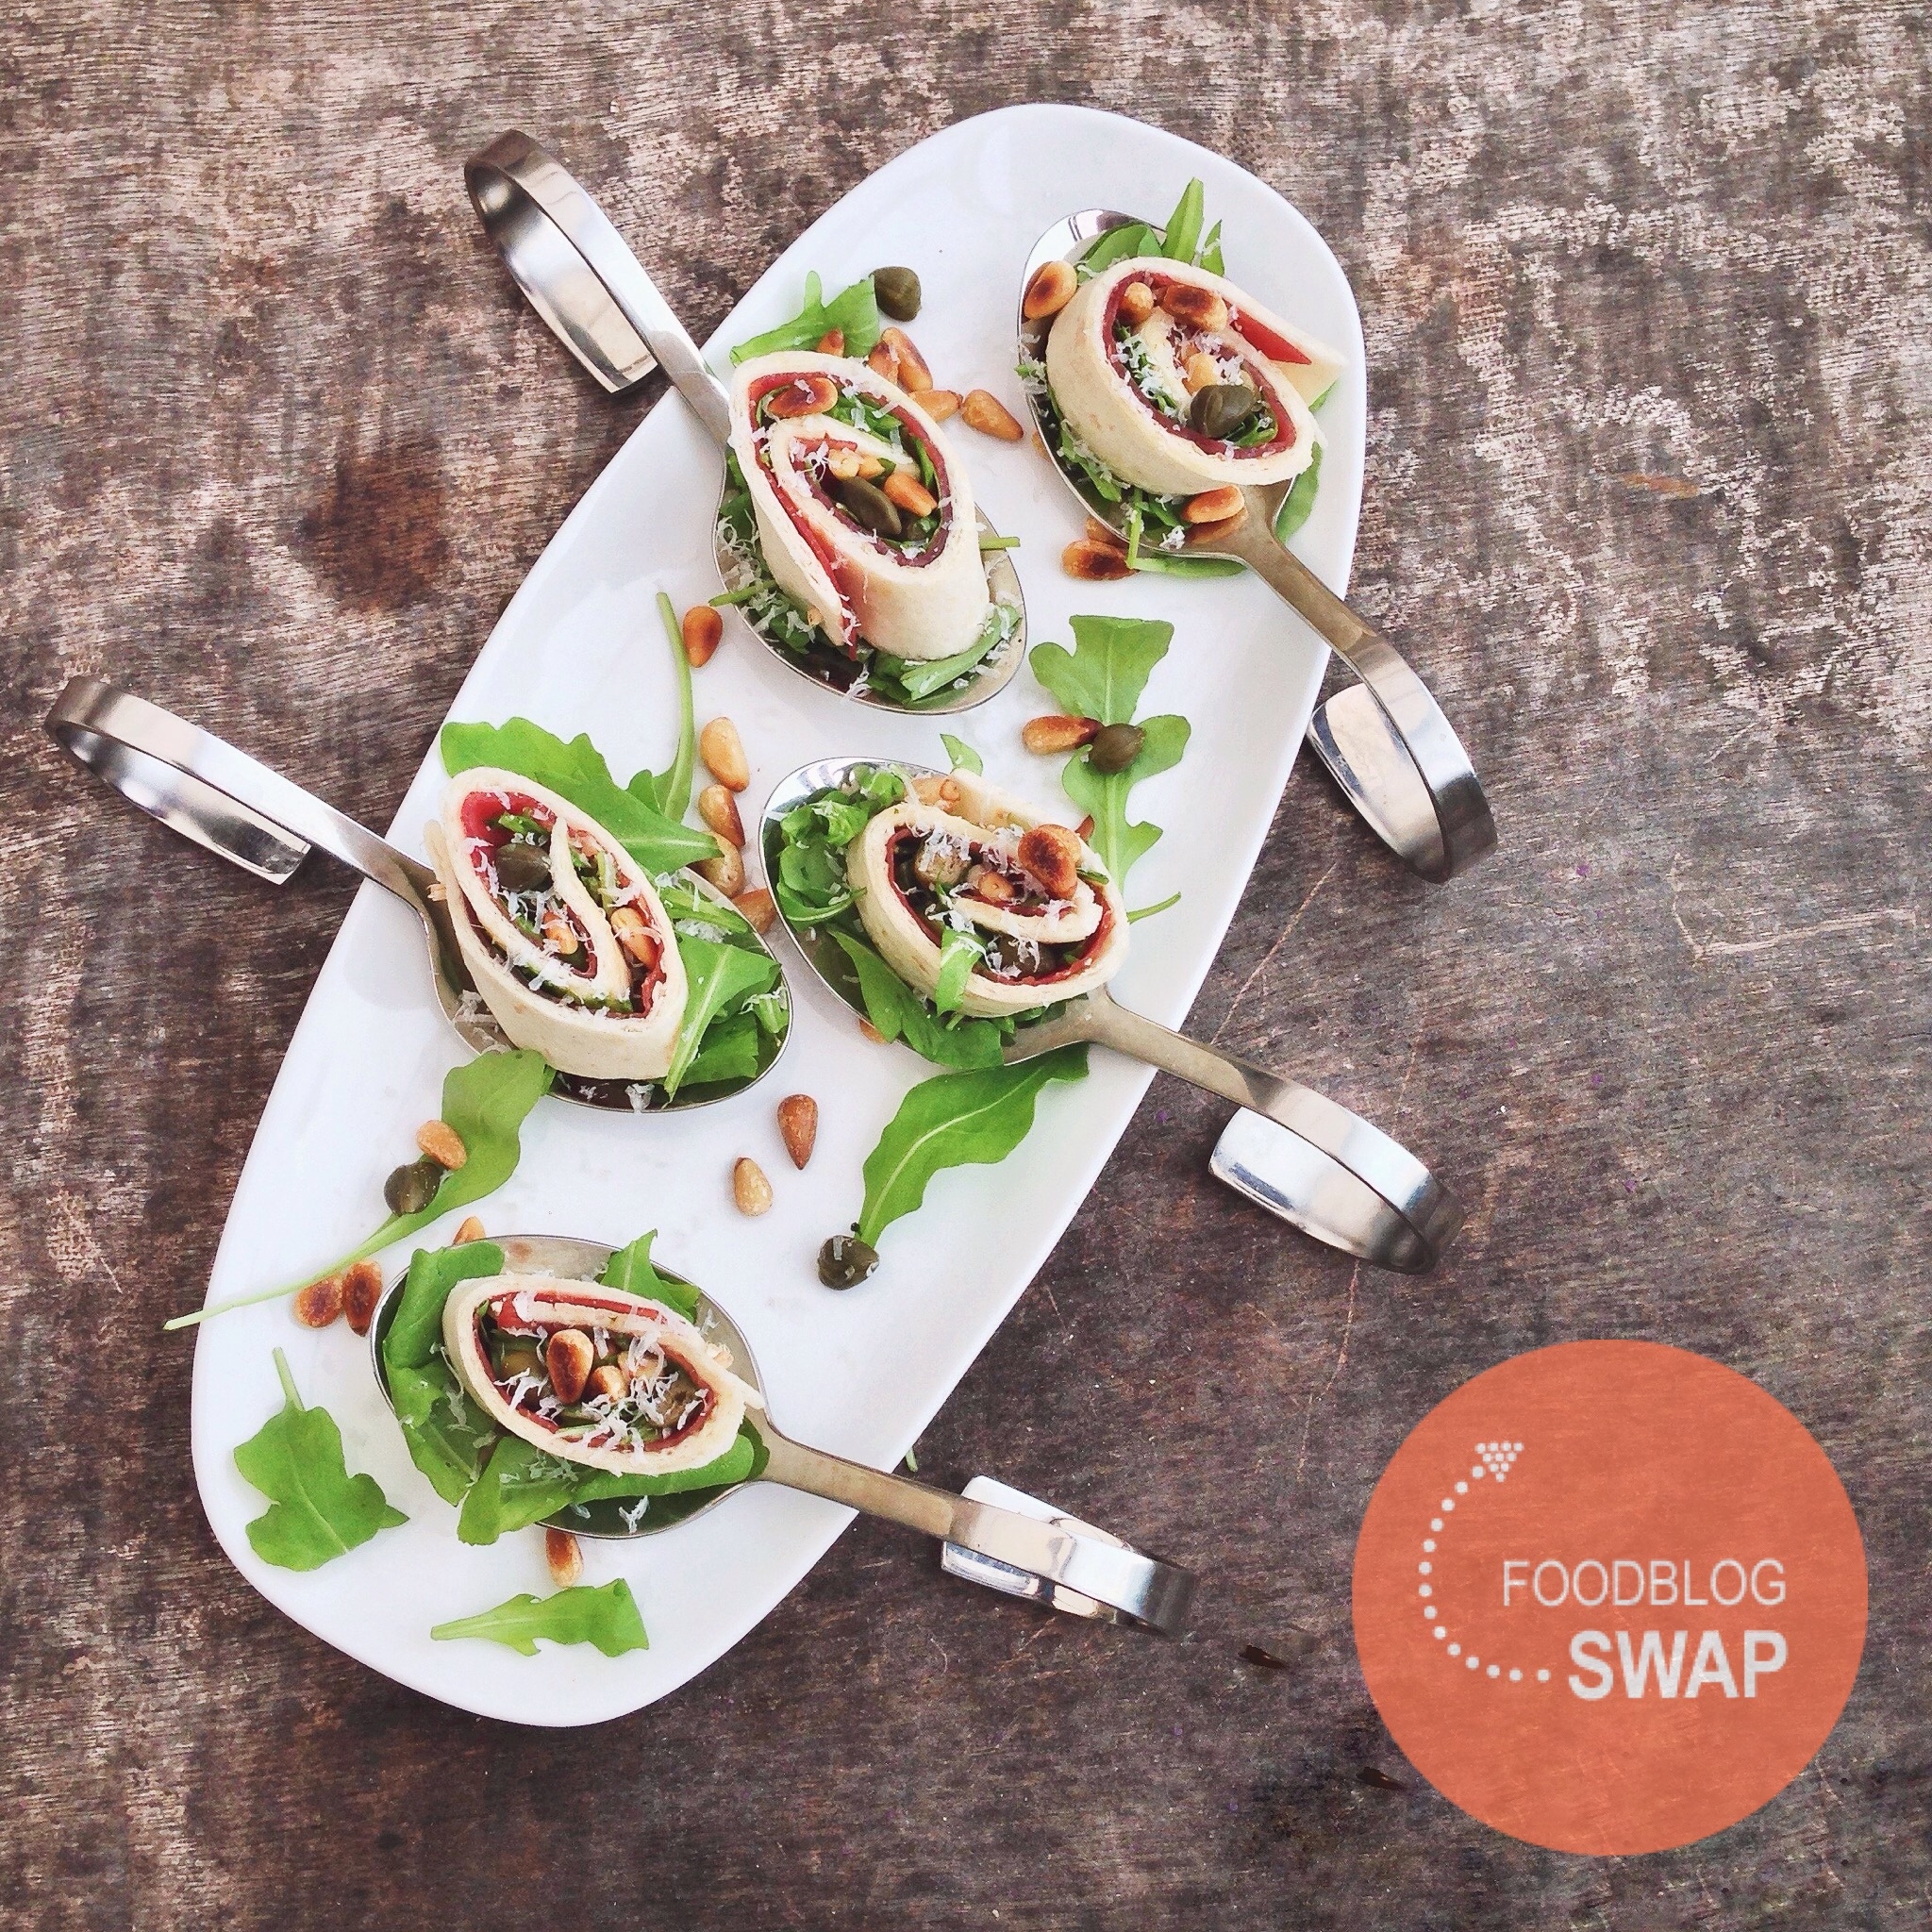 carpaccio wrap met balsamico dressing, by Cookingdom